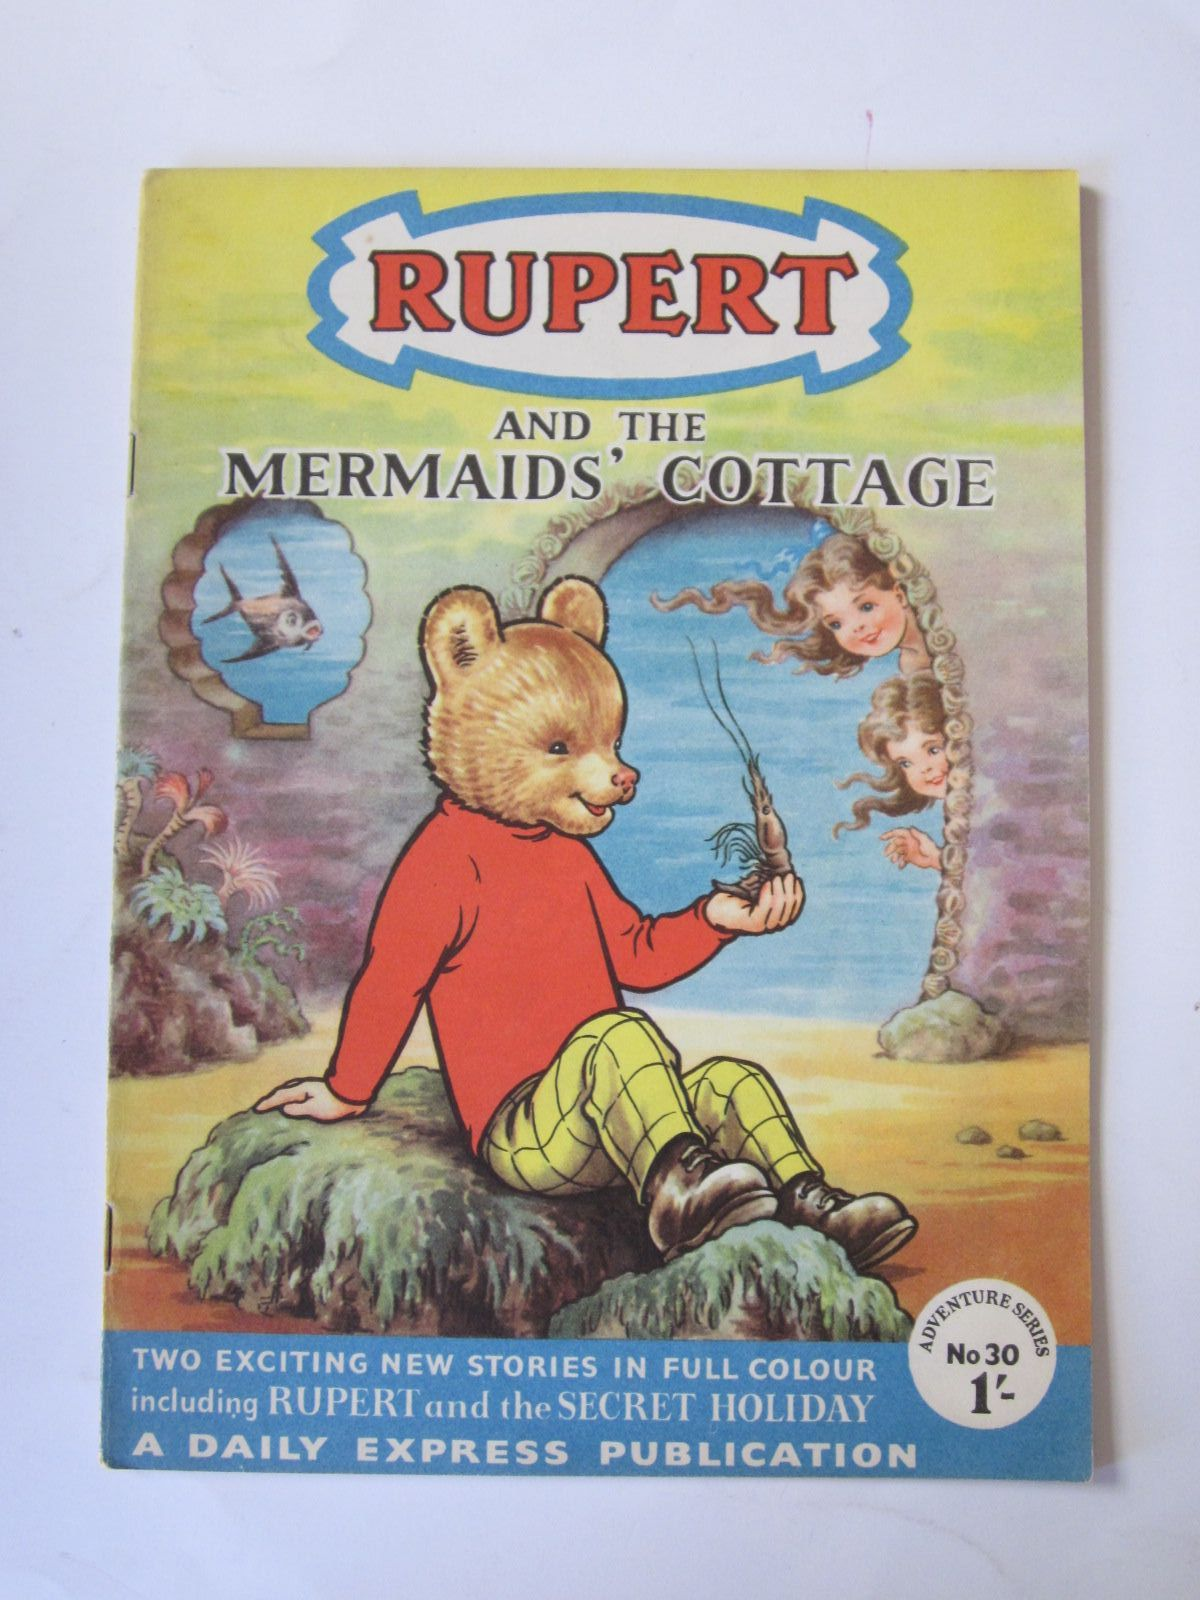 Photo of RUPERT ADVENTURE SERIES No. 30 - RUPERT AND THE MERMAIDS' COTTAGE written by Bestall, Alfred published by Daily Express (STOCK CODE: 1308486)  for sale by Stella & Rose's Books